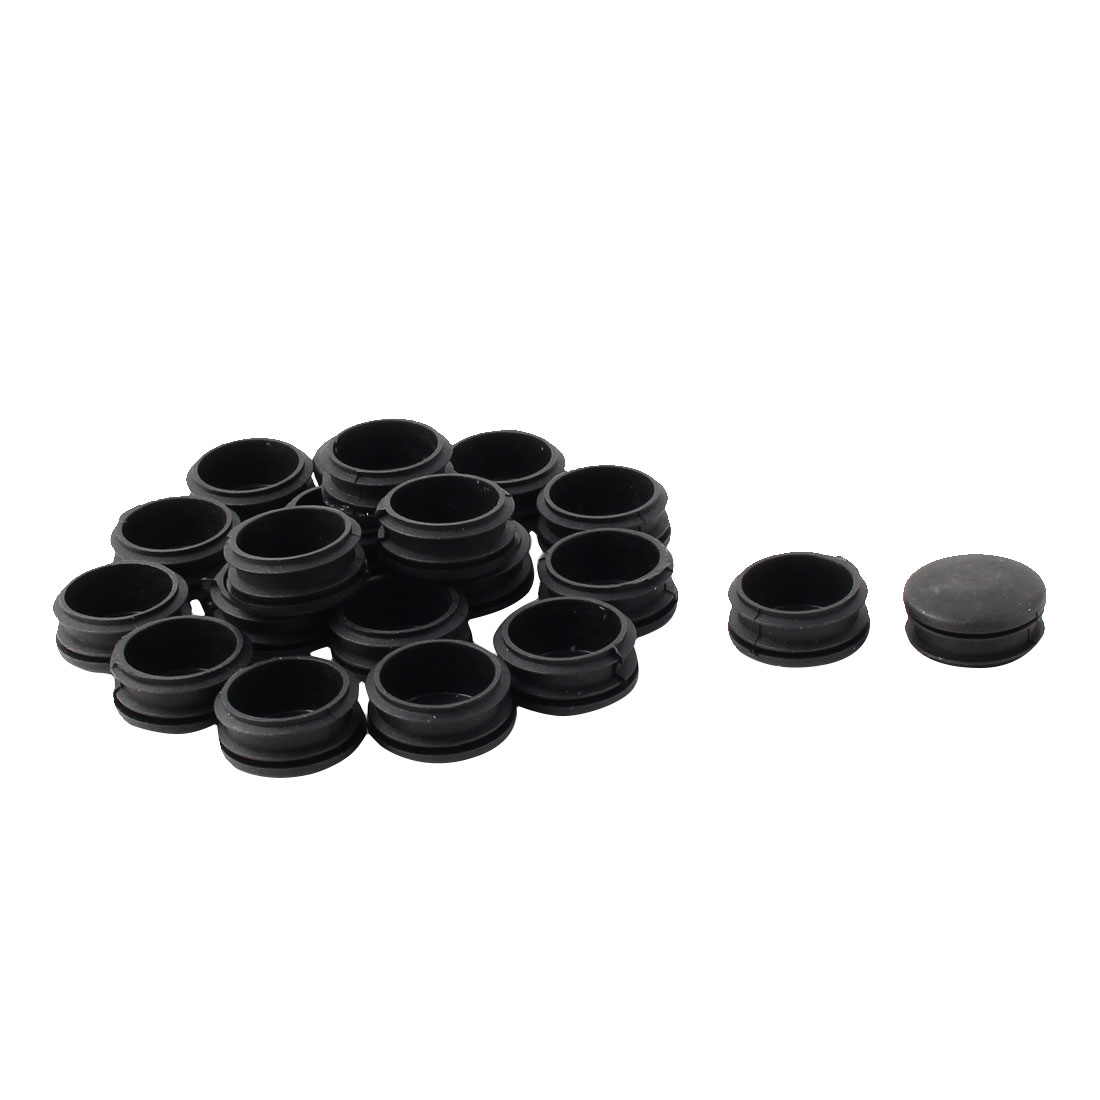 Plastic Round Tube Insert Blanking End Protectors Caps Black 34mm 20 PCS